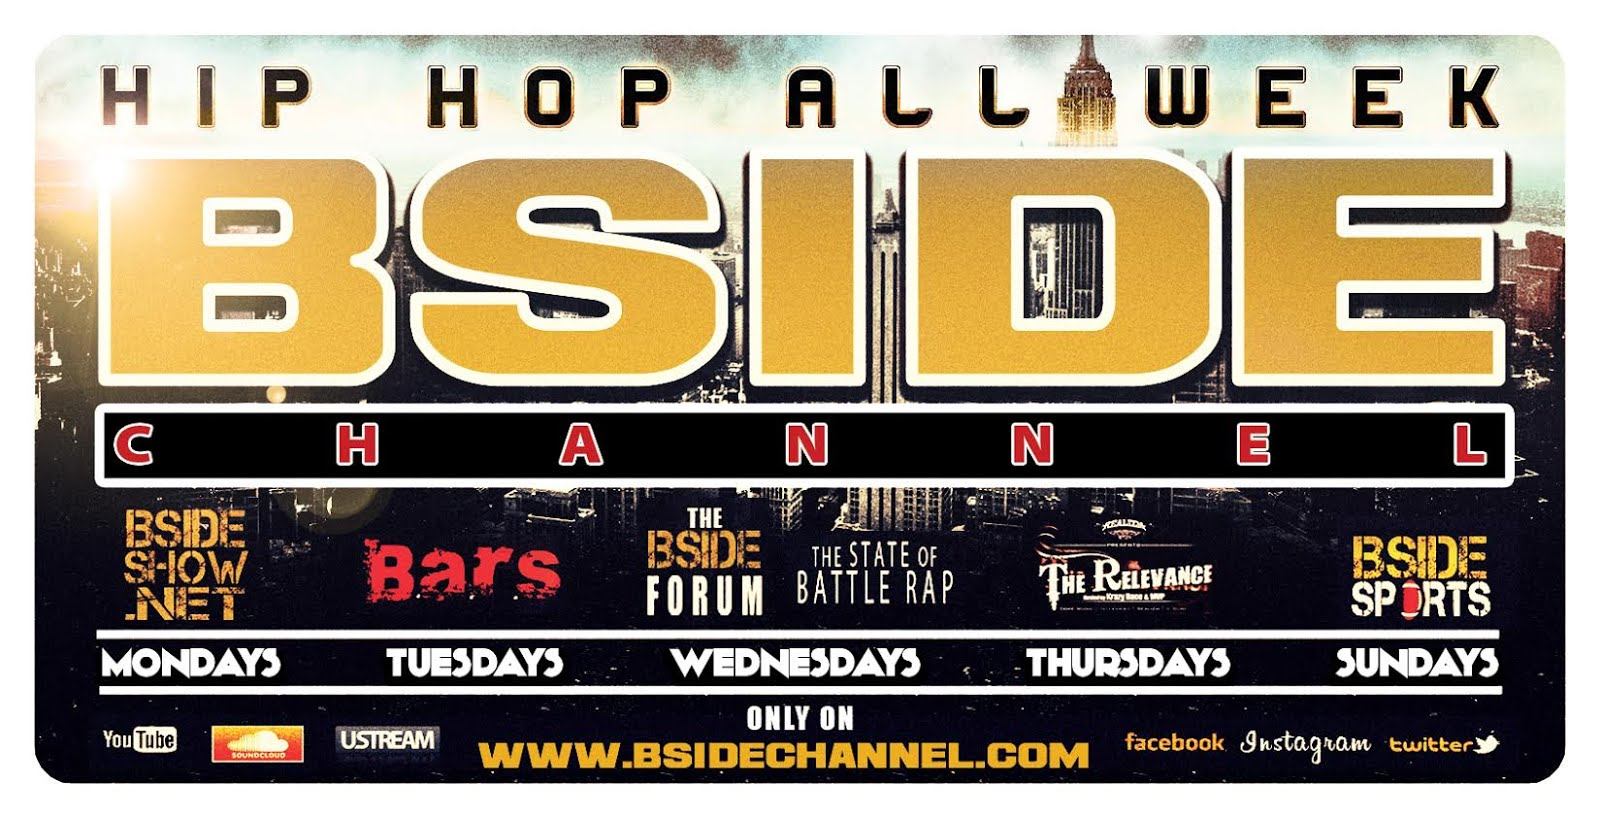 The Relevance is LIVE every otherThursday of the month from 9pm-11:30pm PST on www.bsidechannel.com